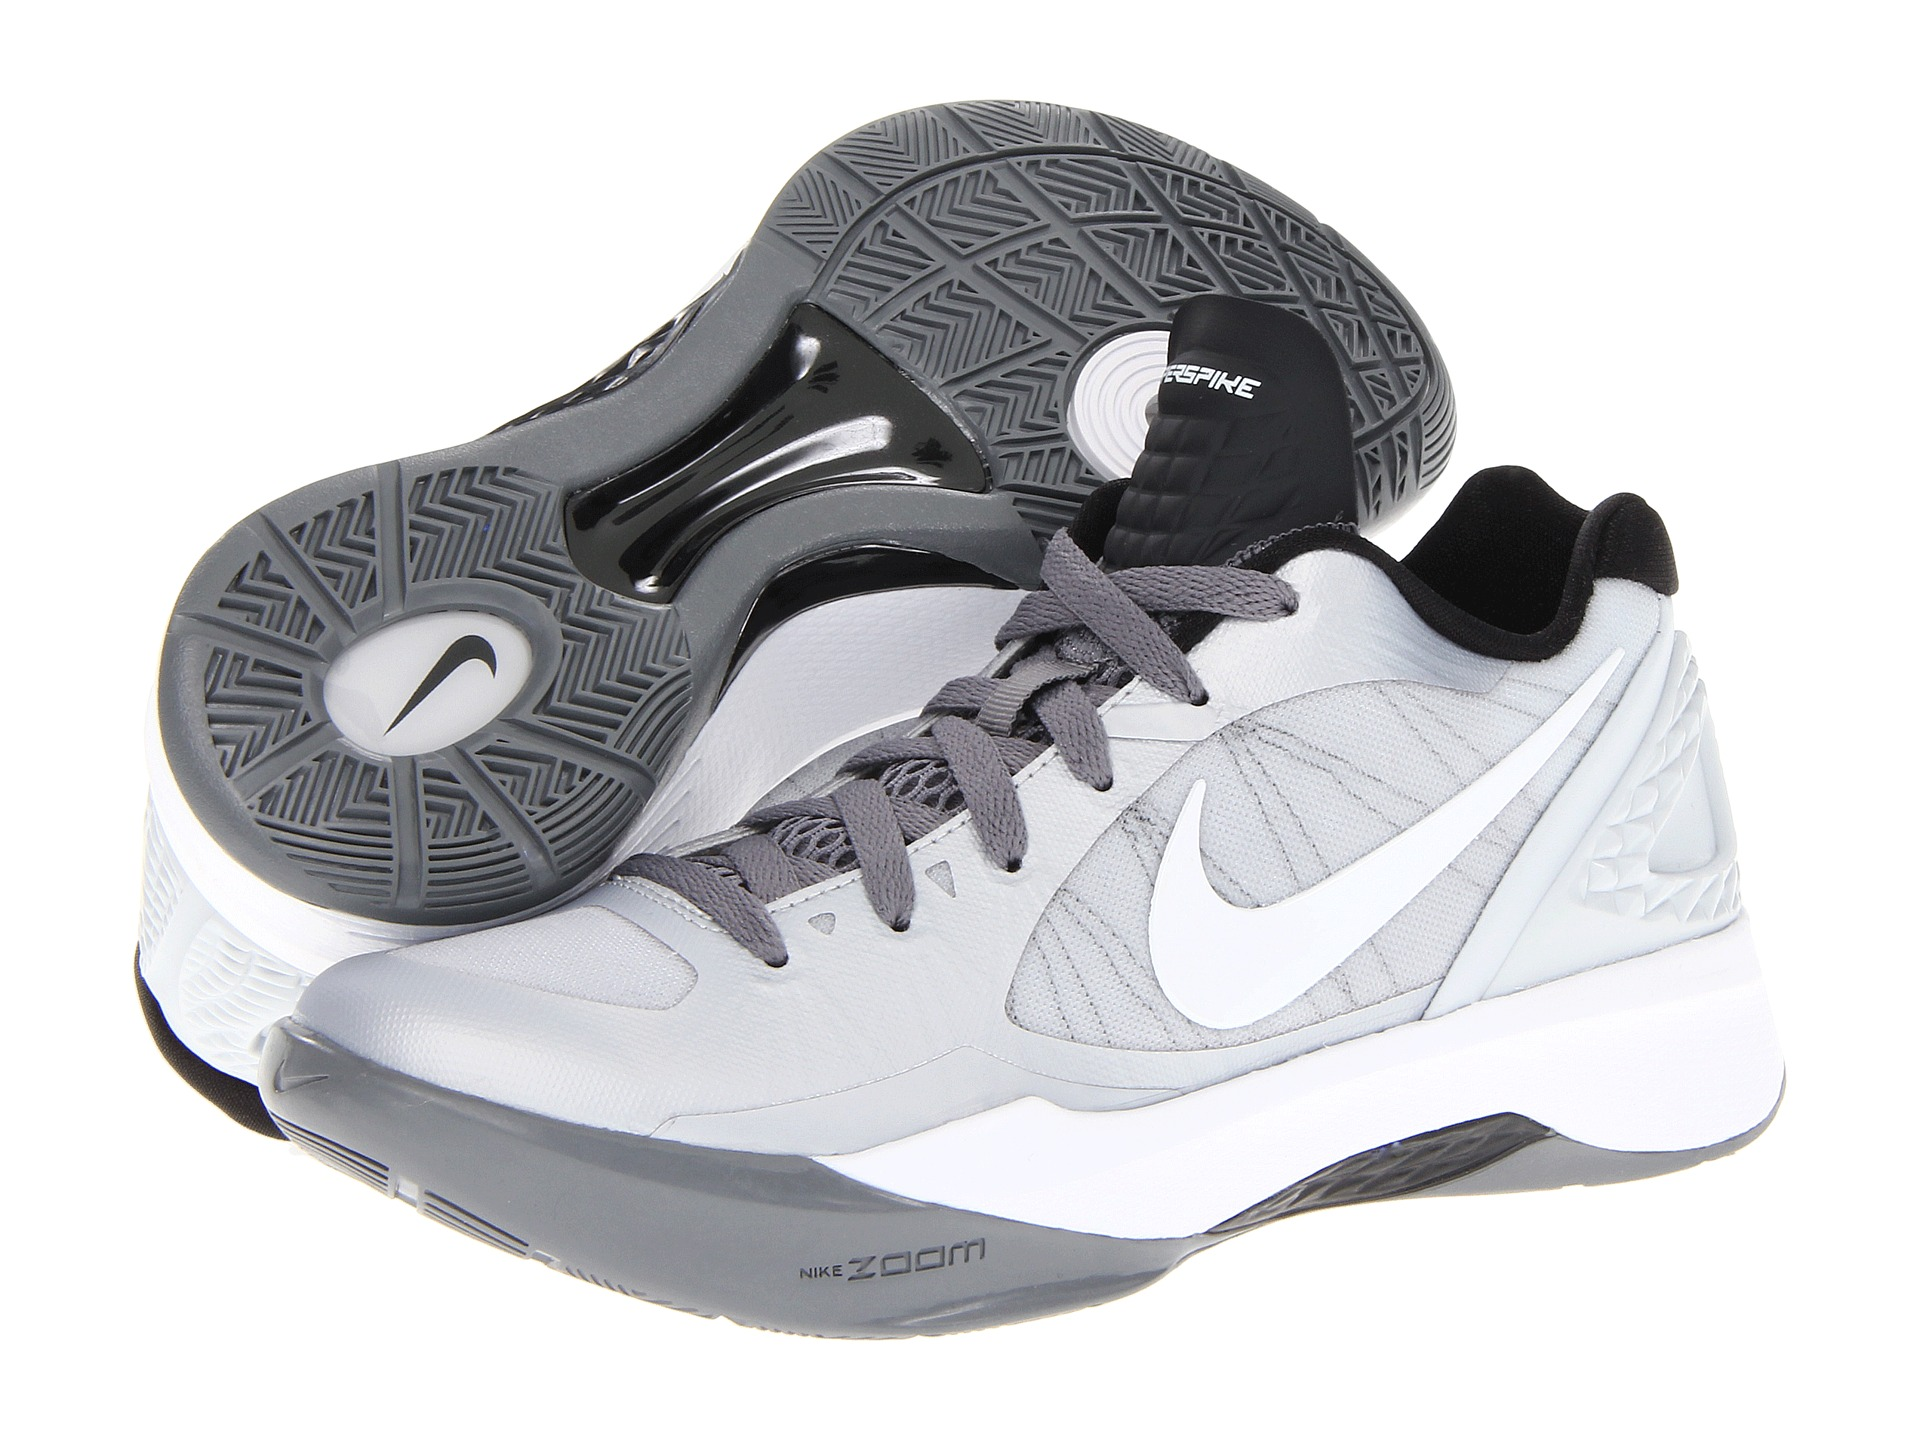 Nike Volley Zoom Hyperspike Zappos Com Free Shipping